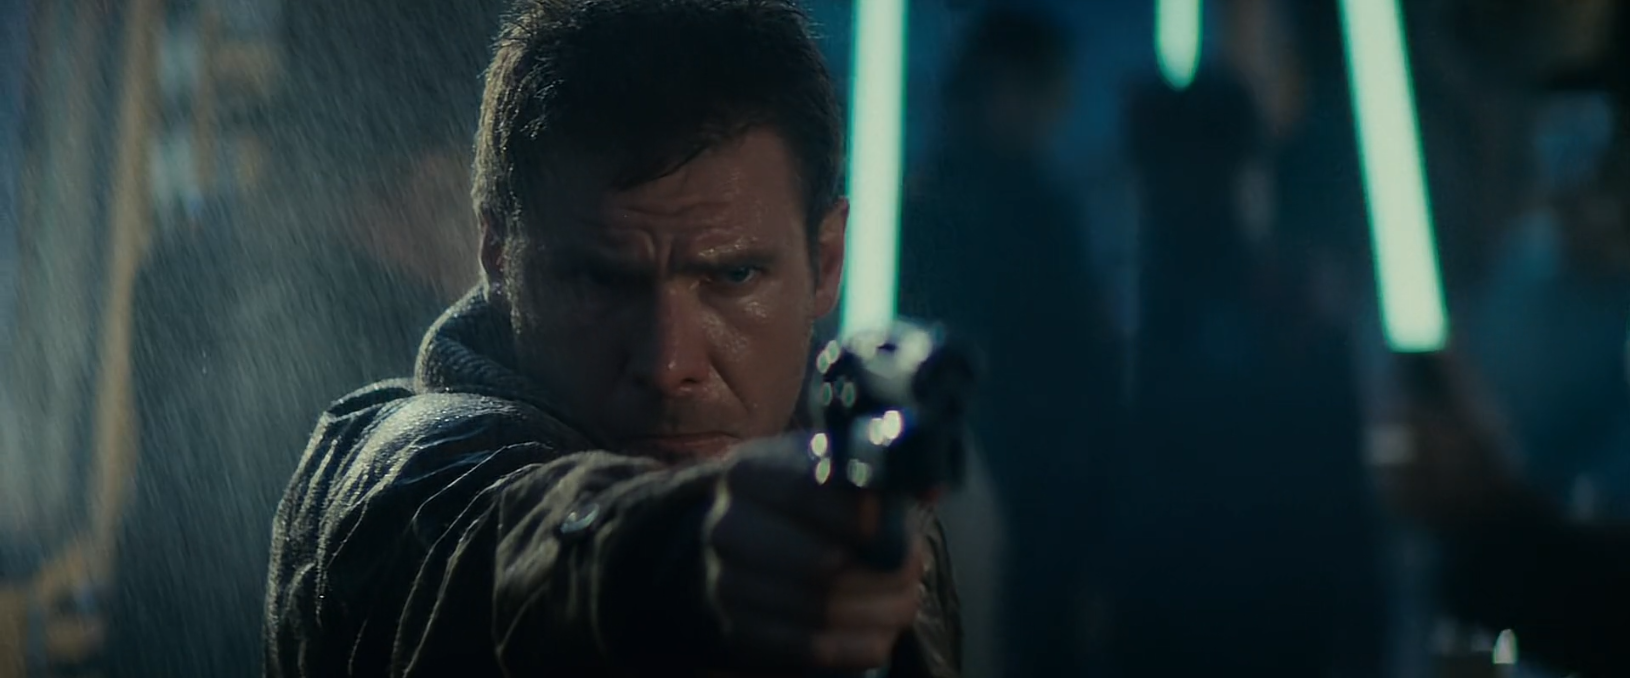 Blade Runner - Harrison Ford as Deckard